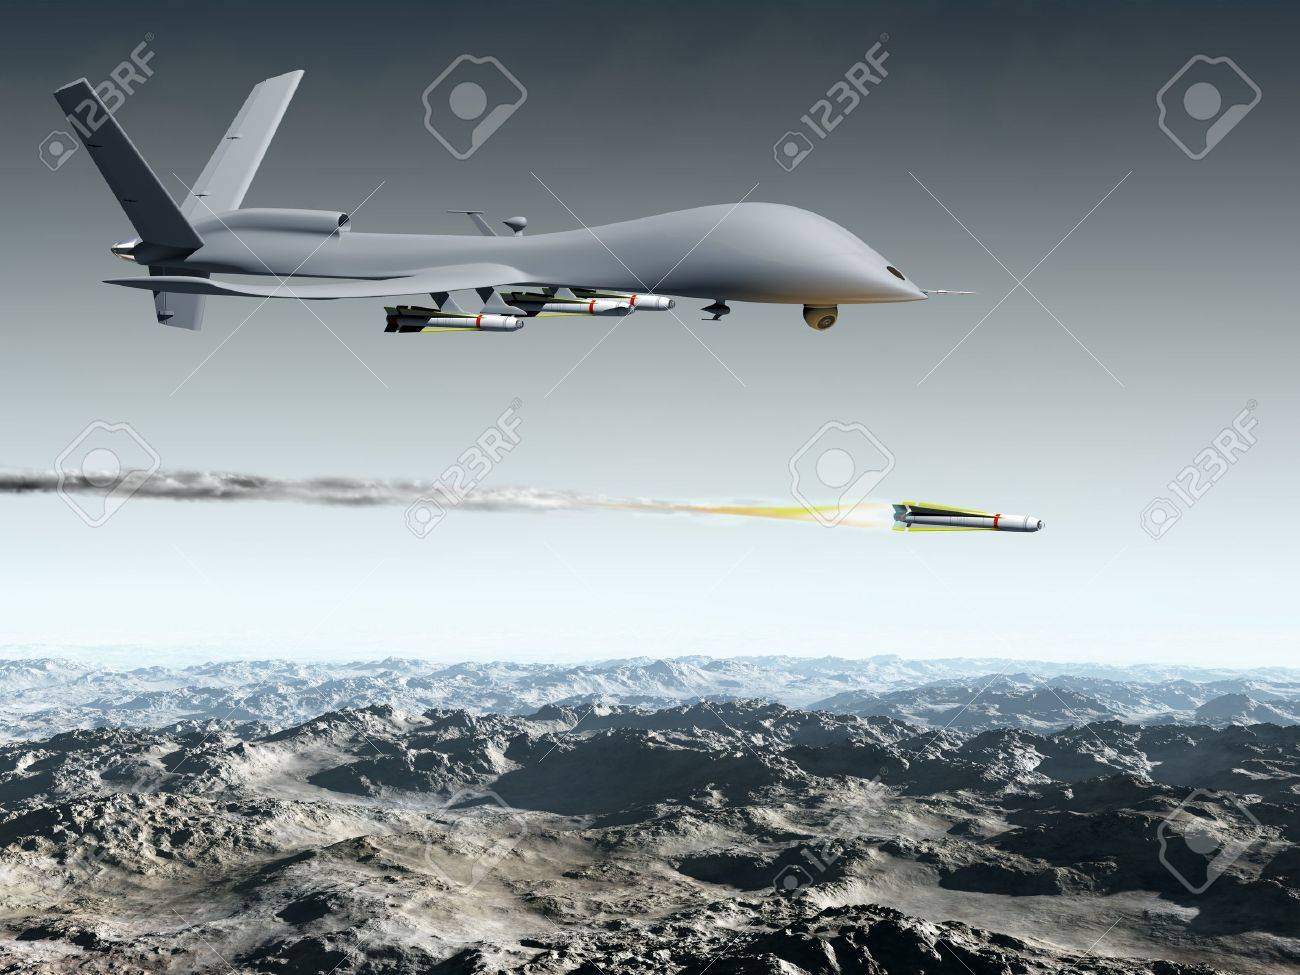 Drone Aircraft Launching An Air To Ground Missile Stock Photo